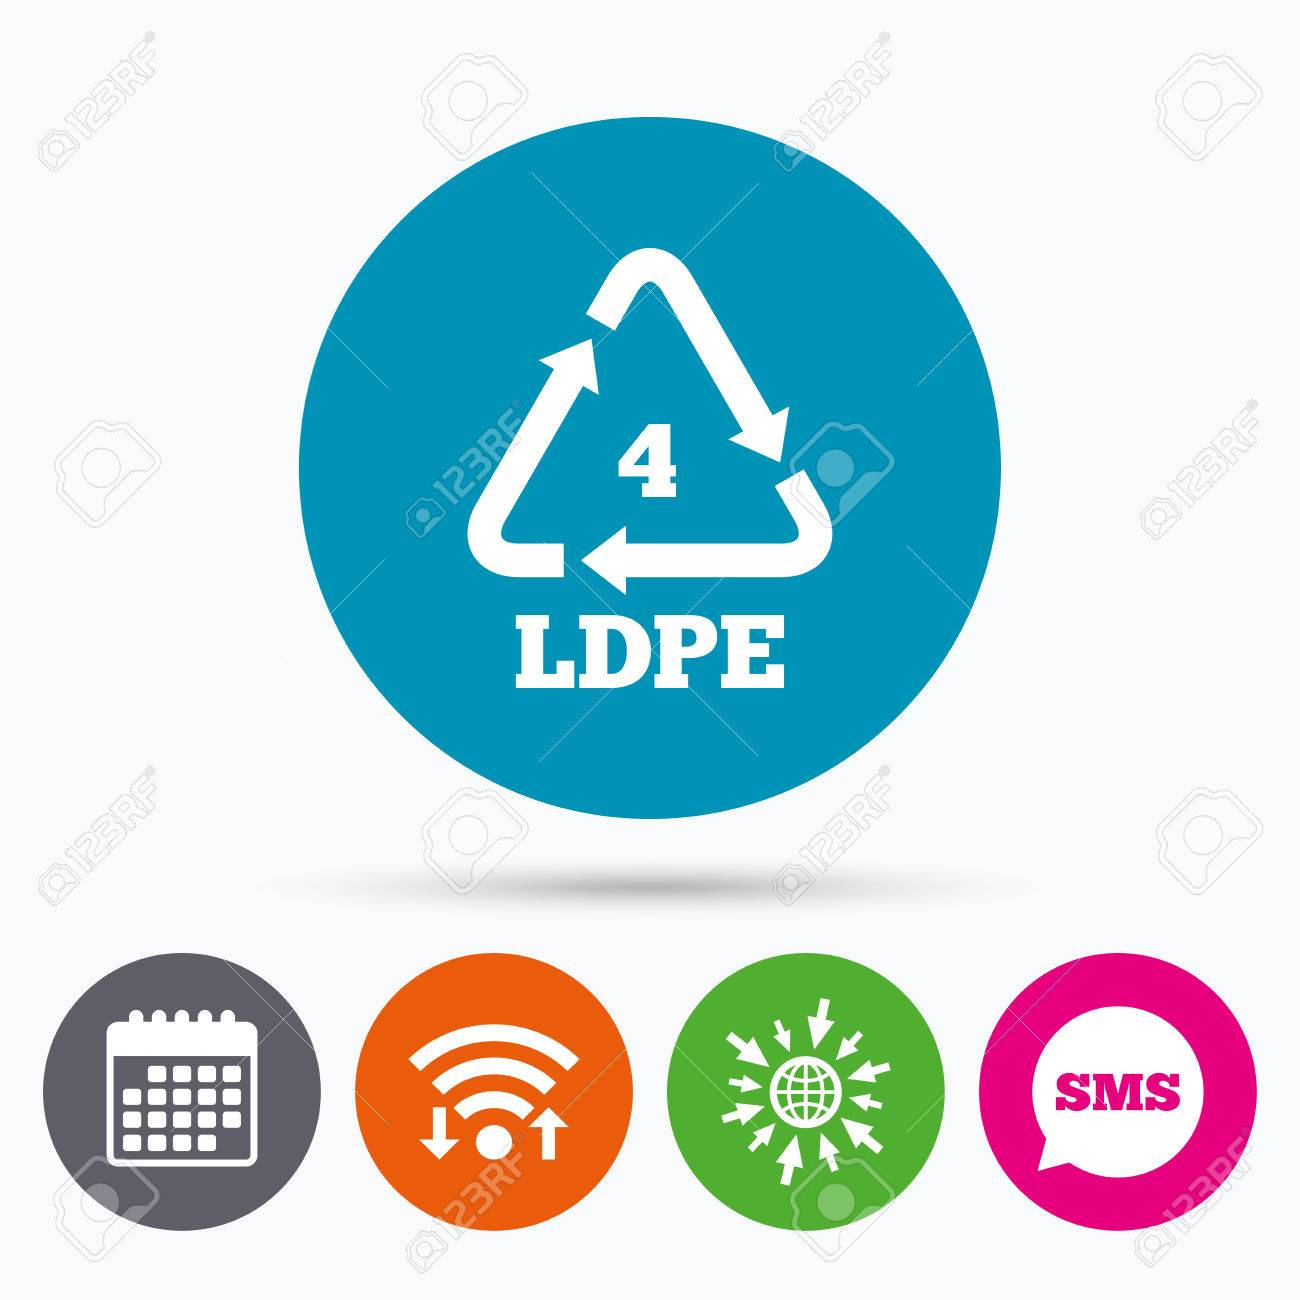 Wifi sms and calendar icons ld pe 4 icon low density polyethylene ld pe 4 icon low density biocorpaavc Choice Image